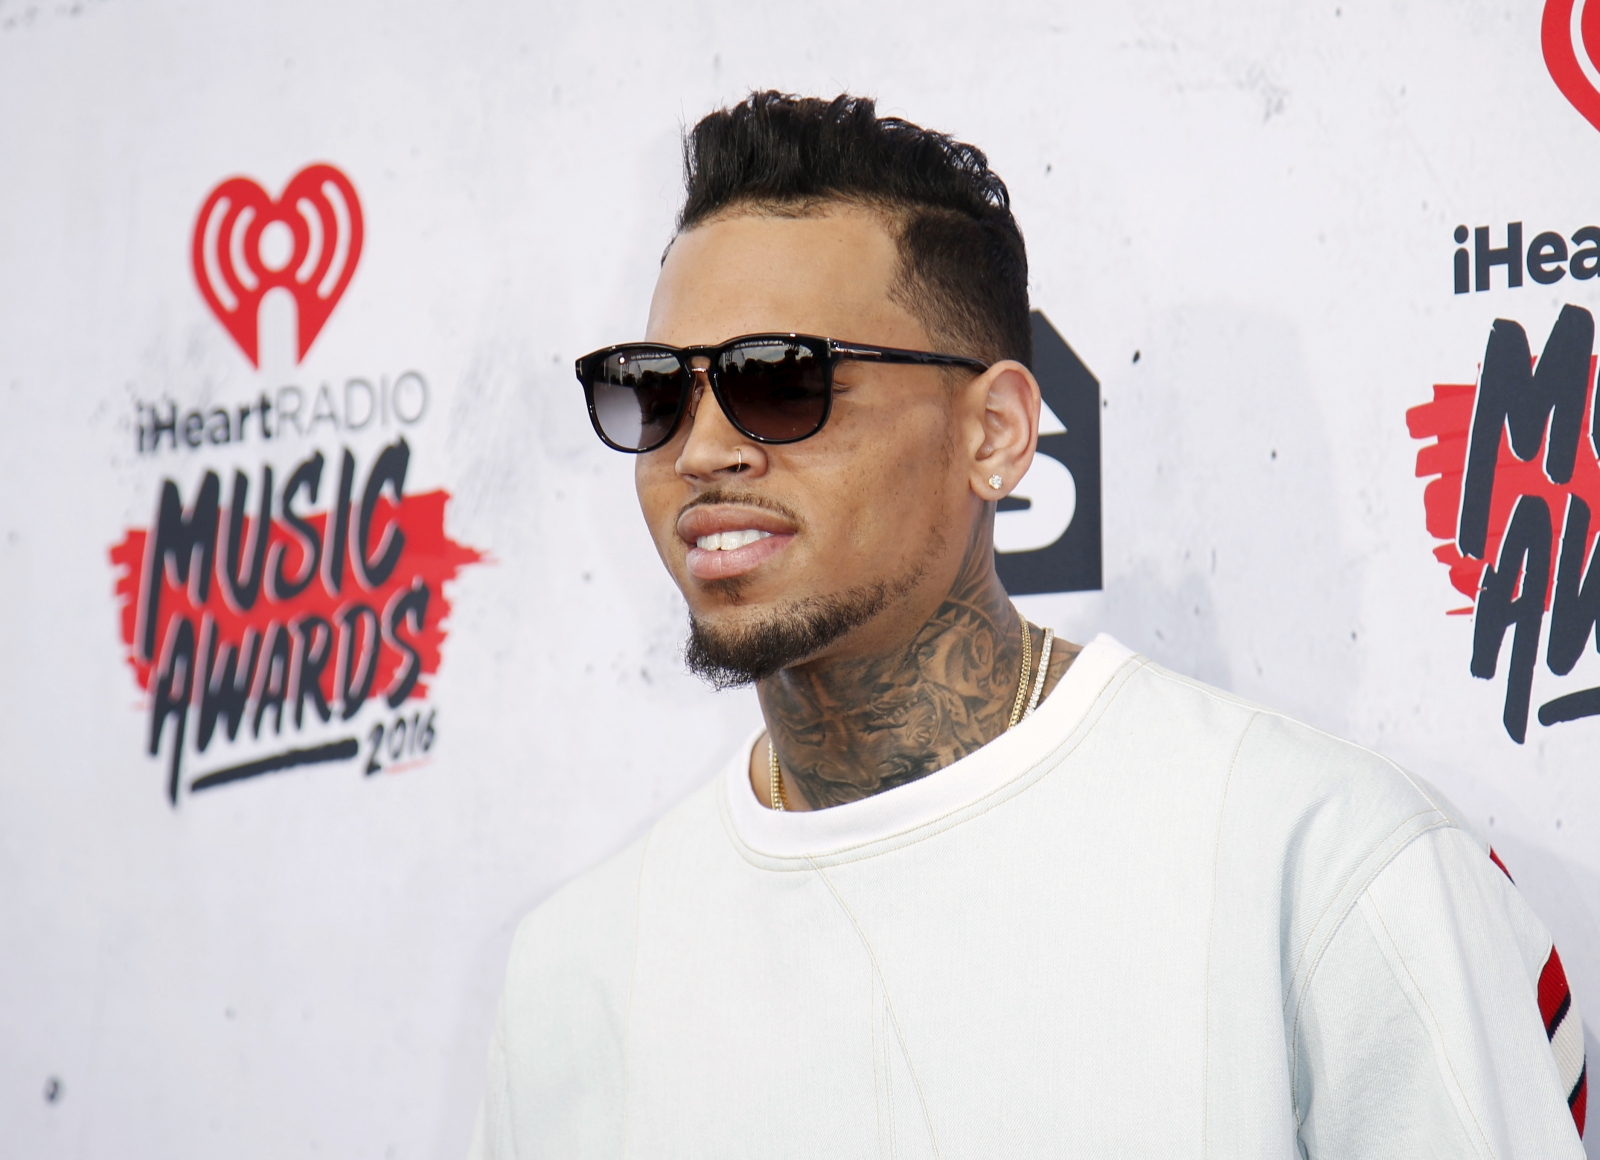 American Music Awards 2016: Chris Brown urges fans to 'come together ... Chrisbrown